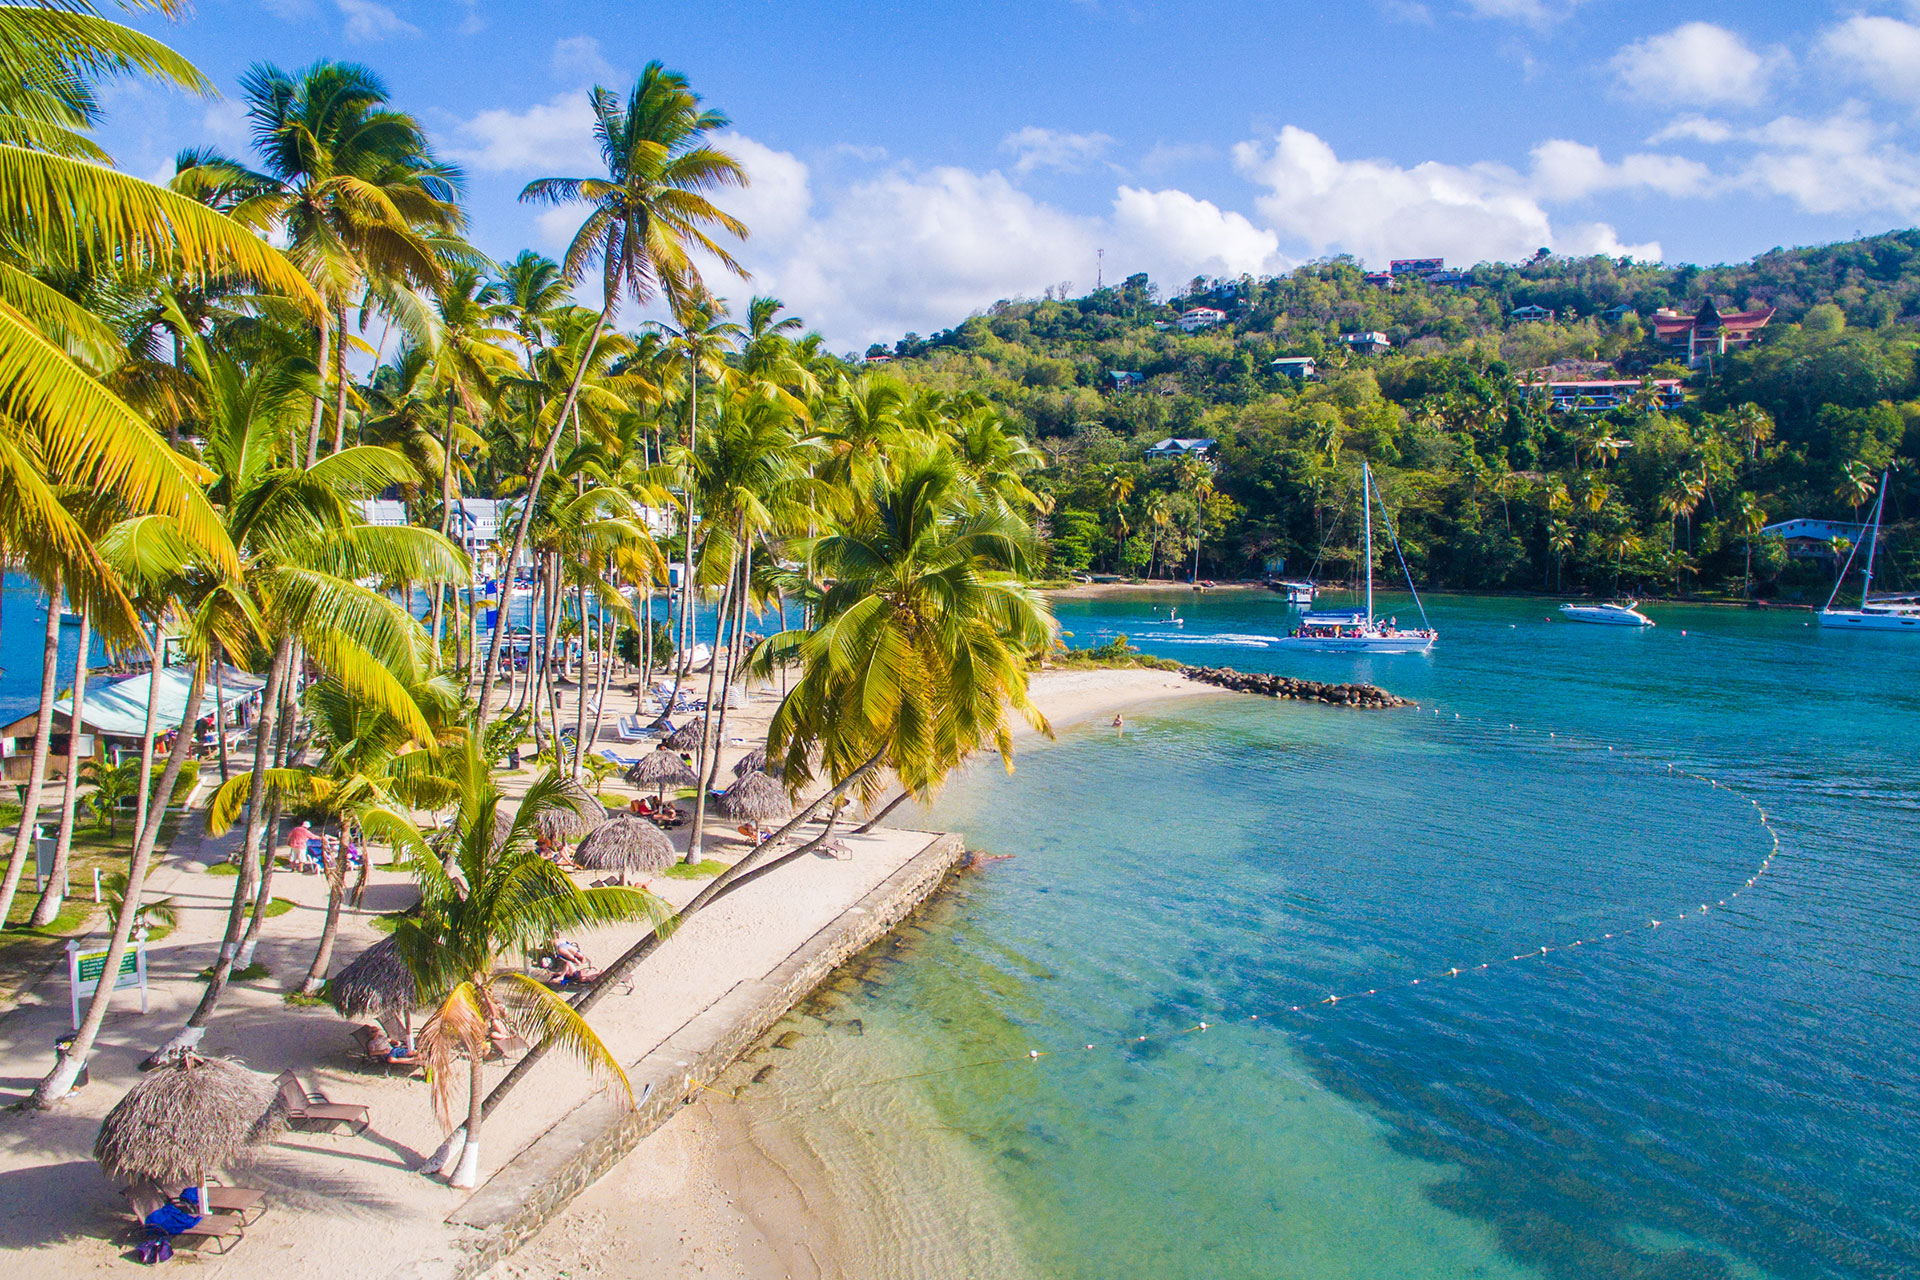 Marigot Bay Resort & Marina in St. Lucia